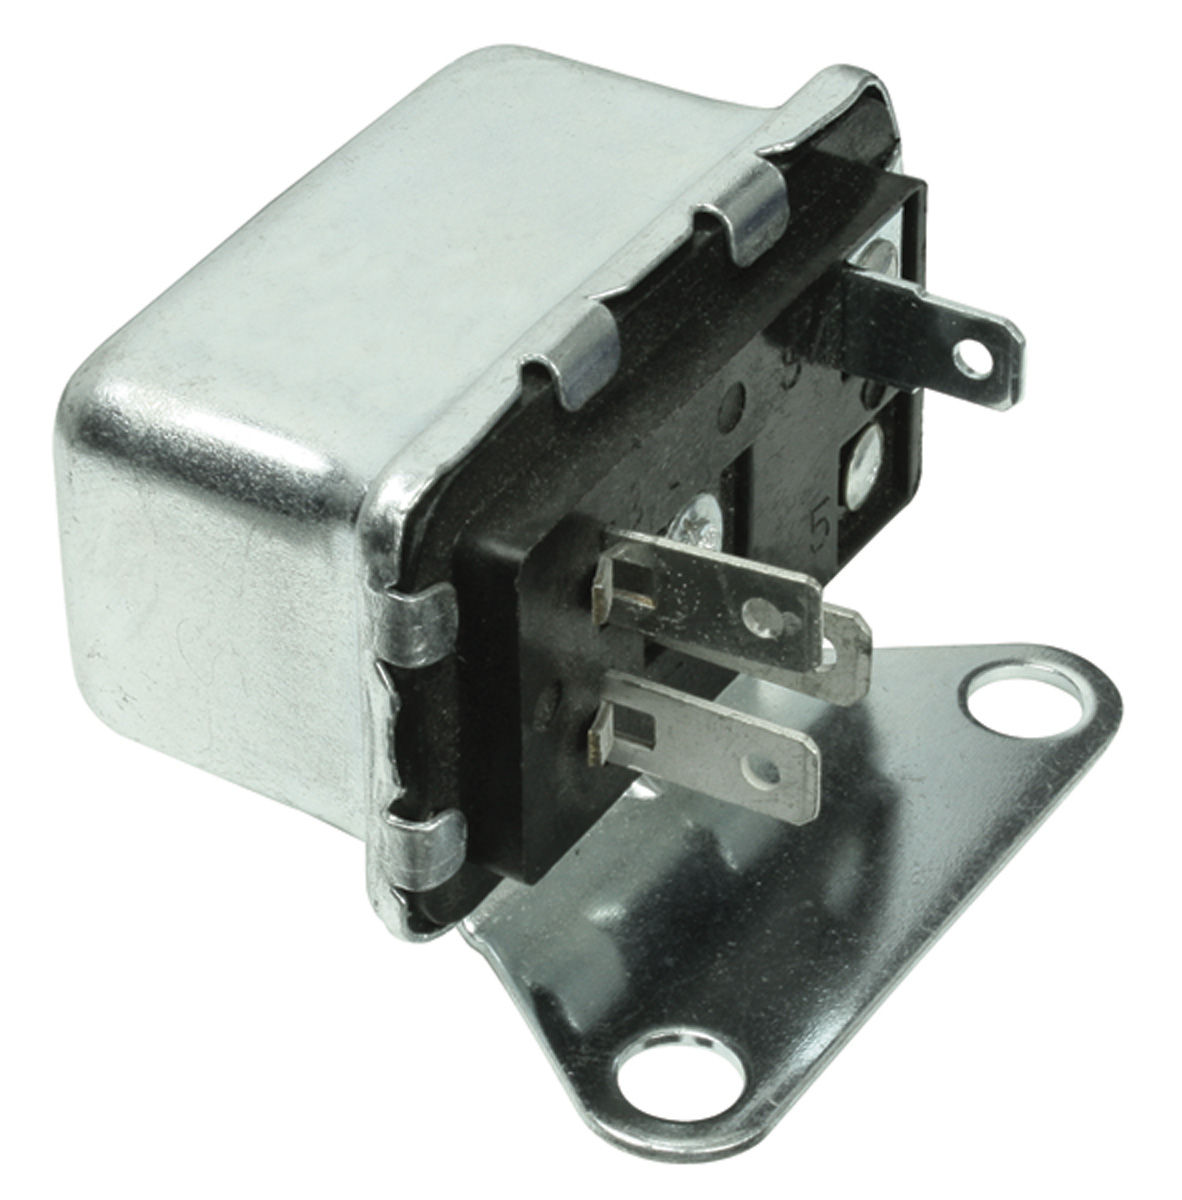 Old Air Products 1968 Cadillac Blower Motor Relay